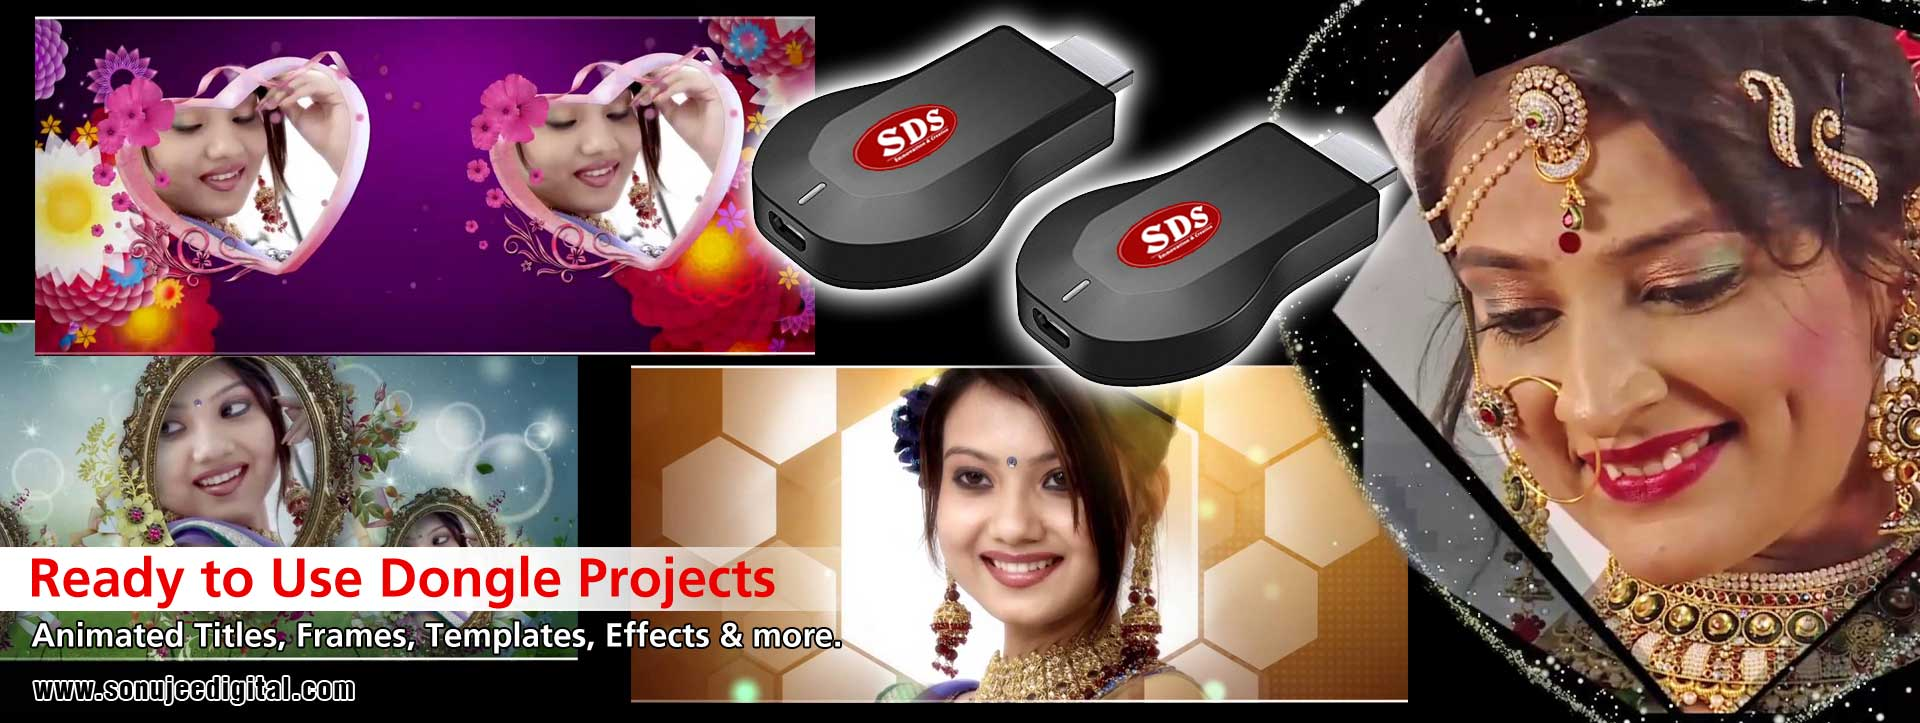 Ready to Use Dongle Projects dealers distributors suppliers in india punjab ludhiana